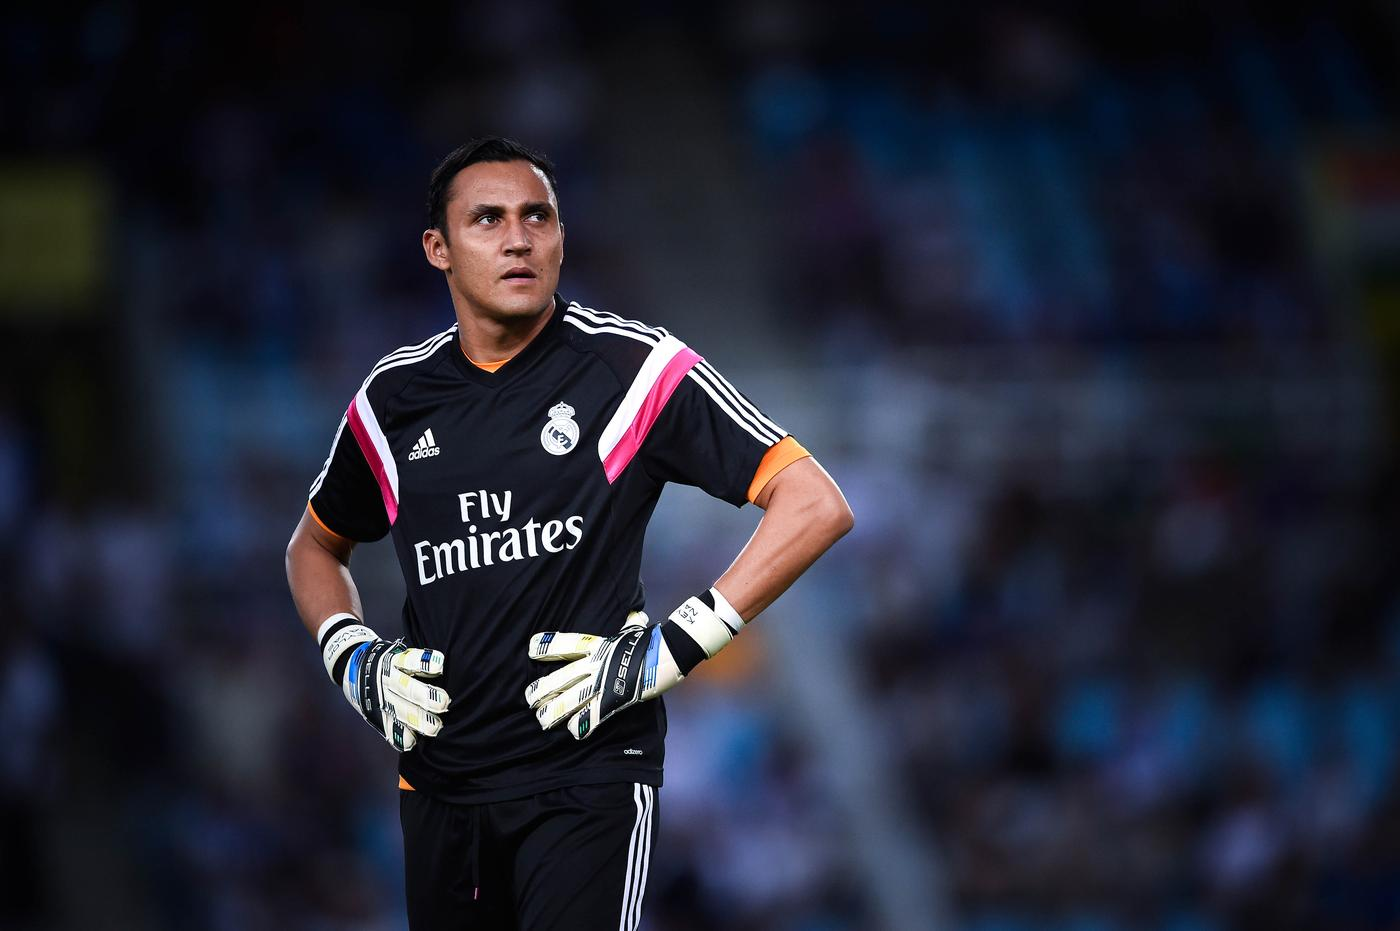 Manchester United reach agreement over Keylor Navas transfer, reports say